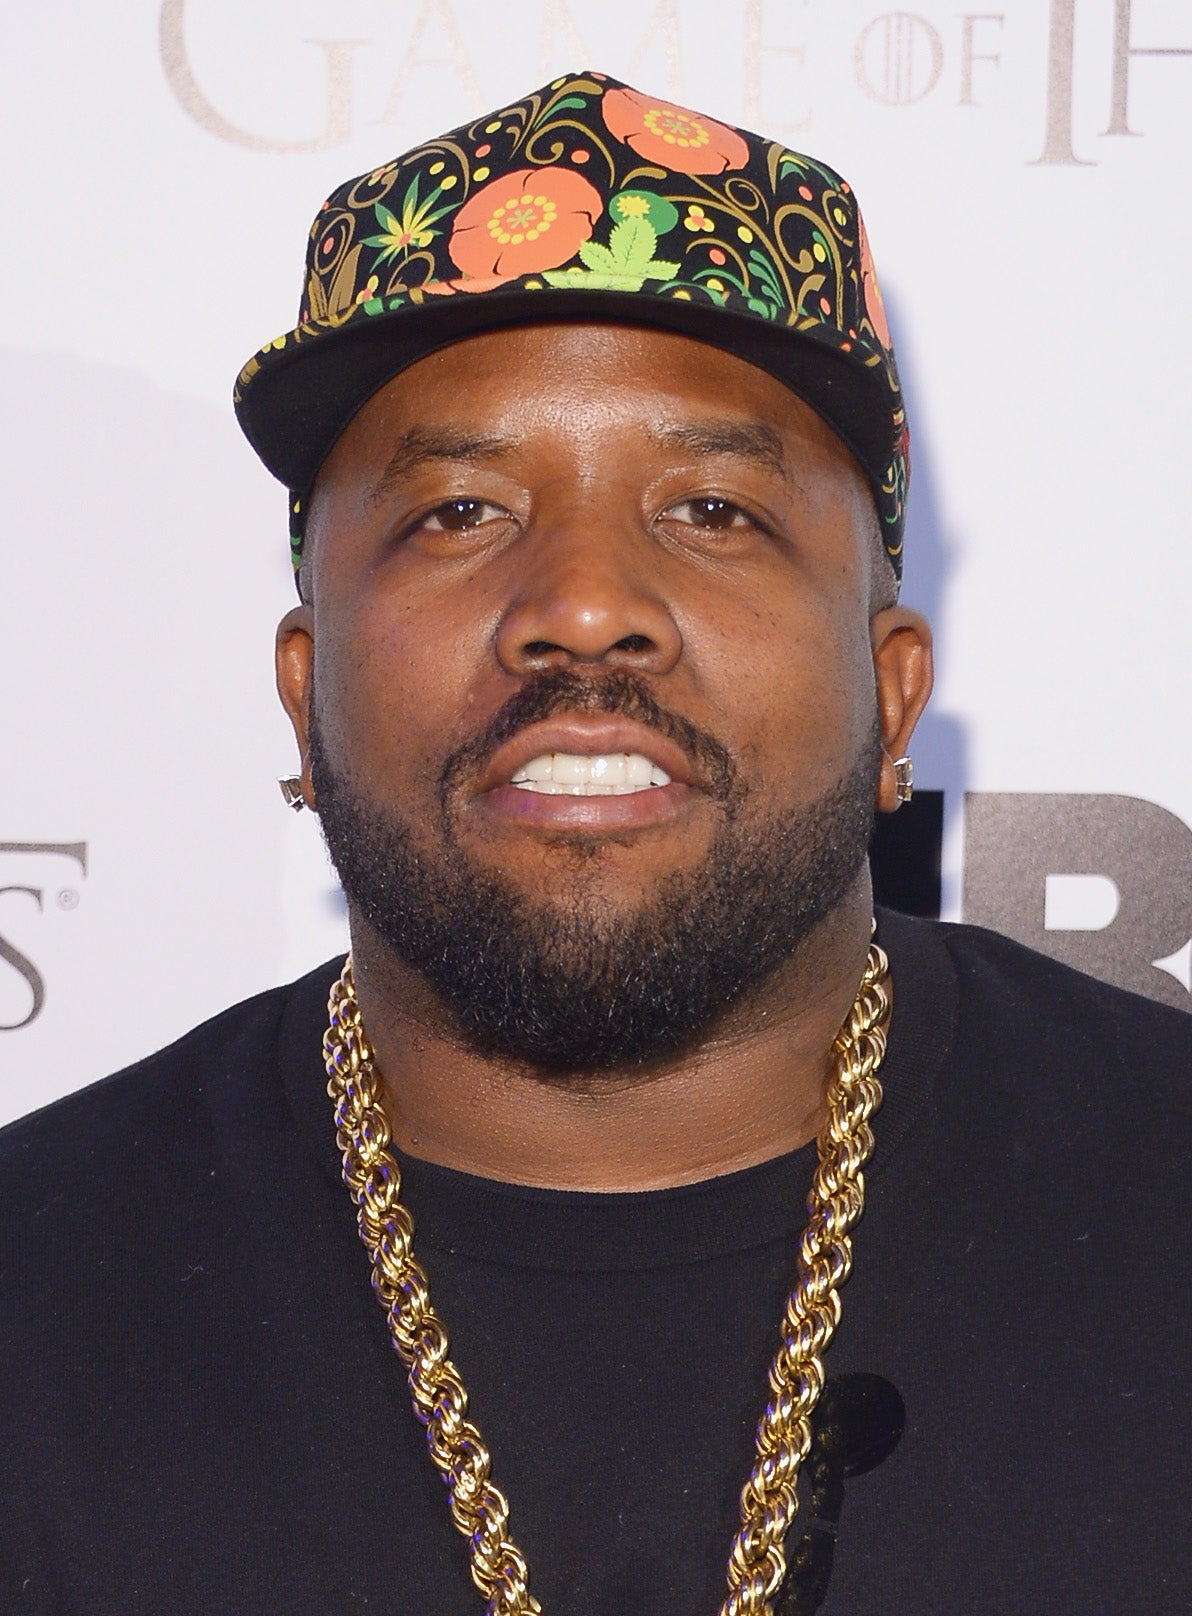 Black Women Stand Up To Big Boi Following His Questionable Instagram Post